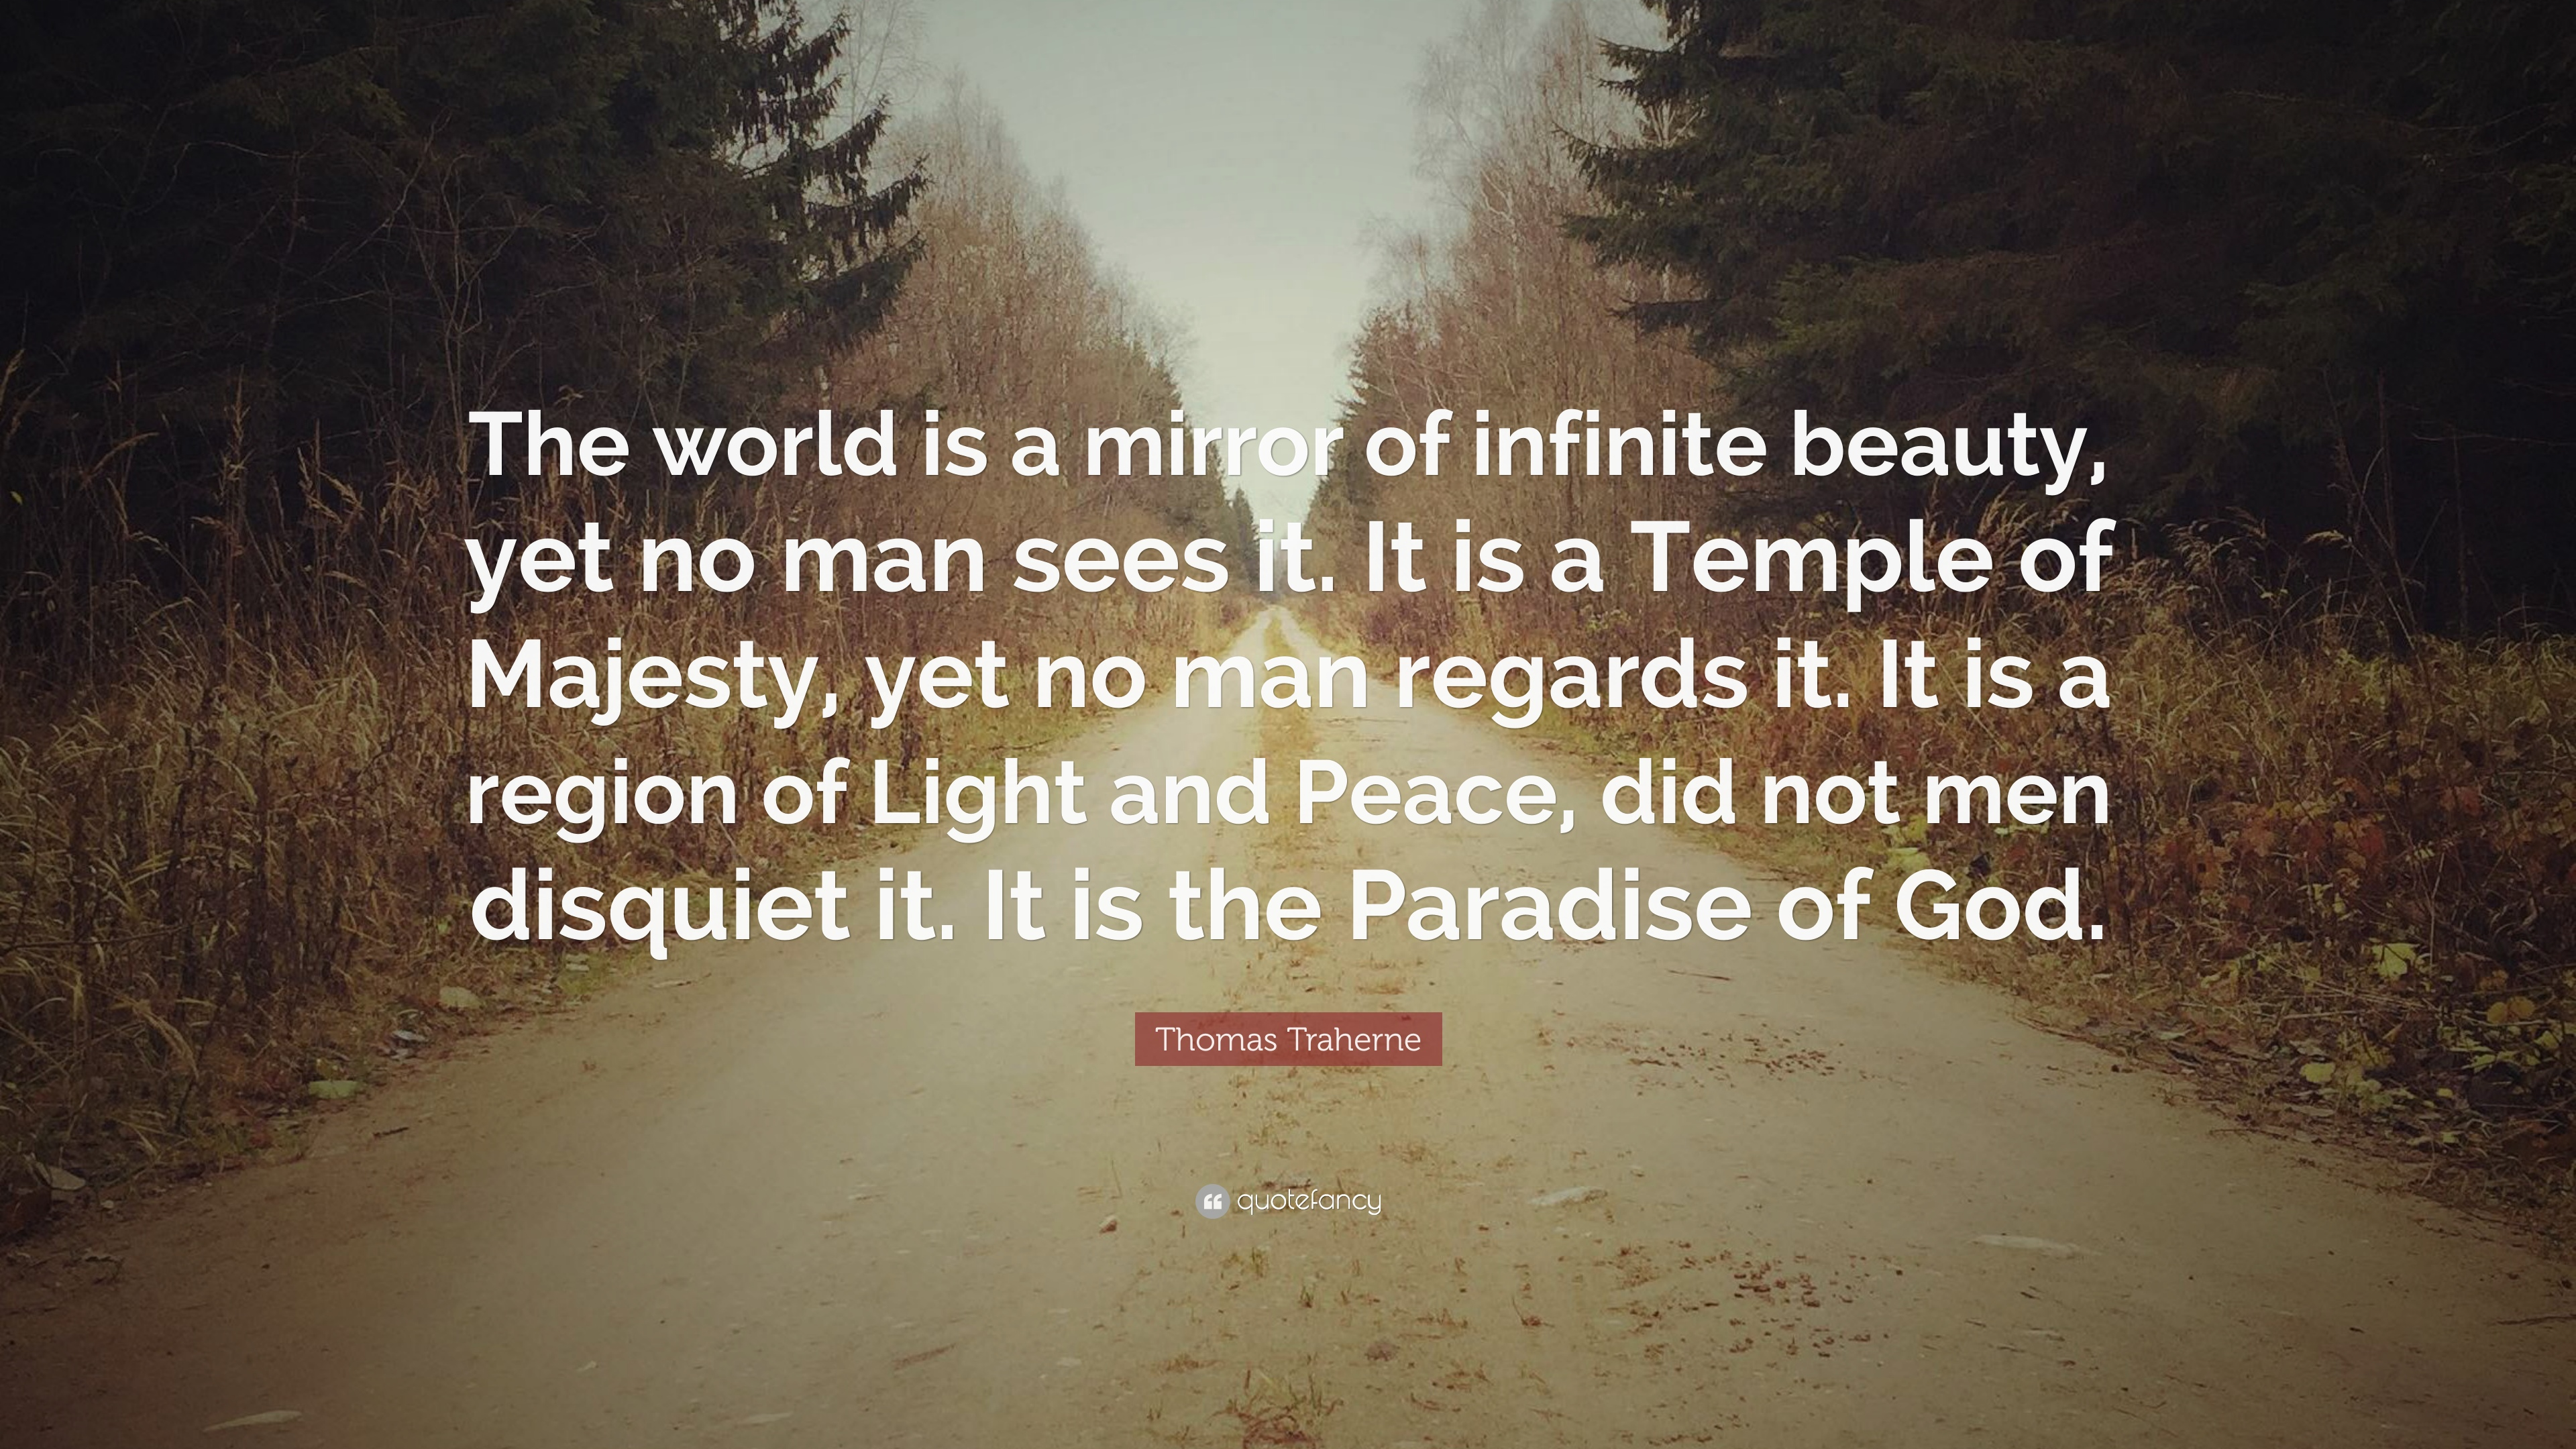 Thomas Traherne Quote The World Is A Mirror Of Infinite Beauty Yet No